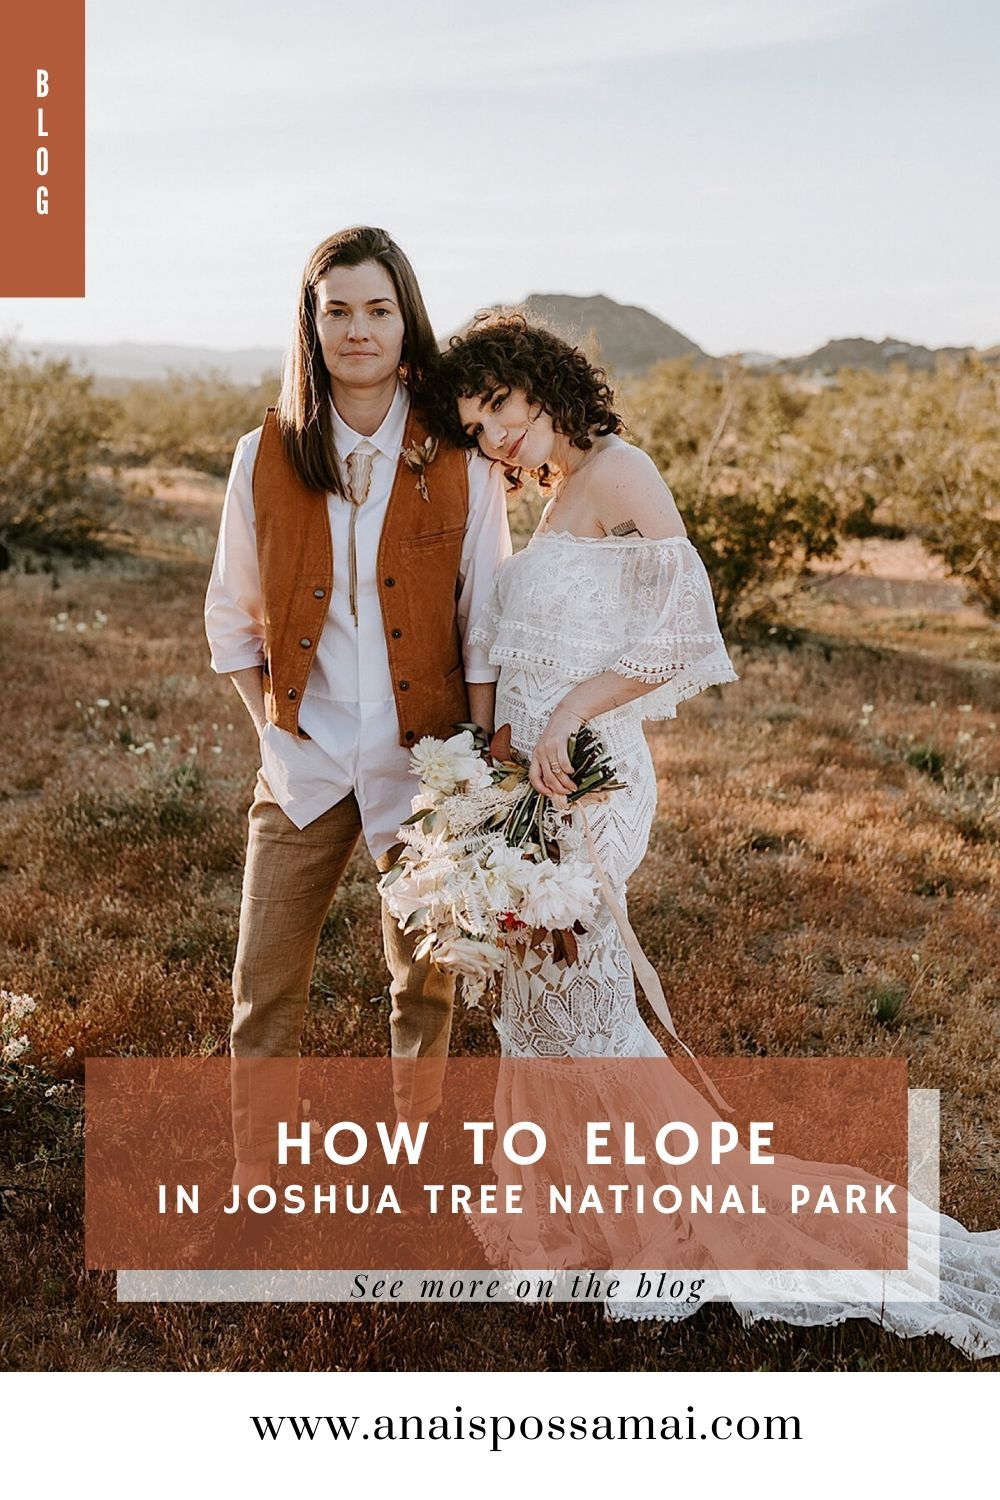 How To Elope In Joshua Tree National Park Joshua Tree Elopement Palm Springs Wedding Photographer Anais Possamai Photographer